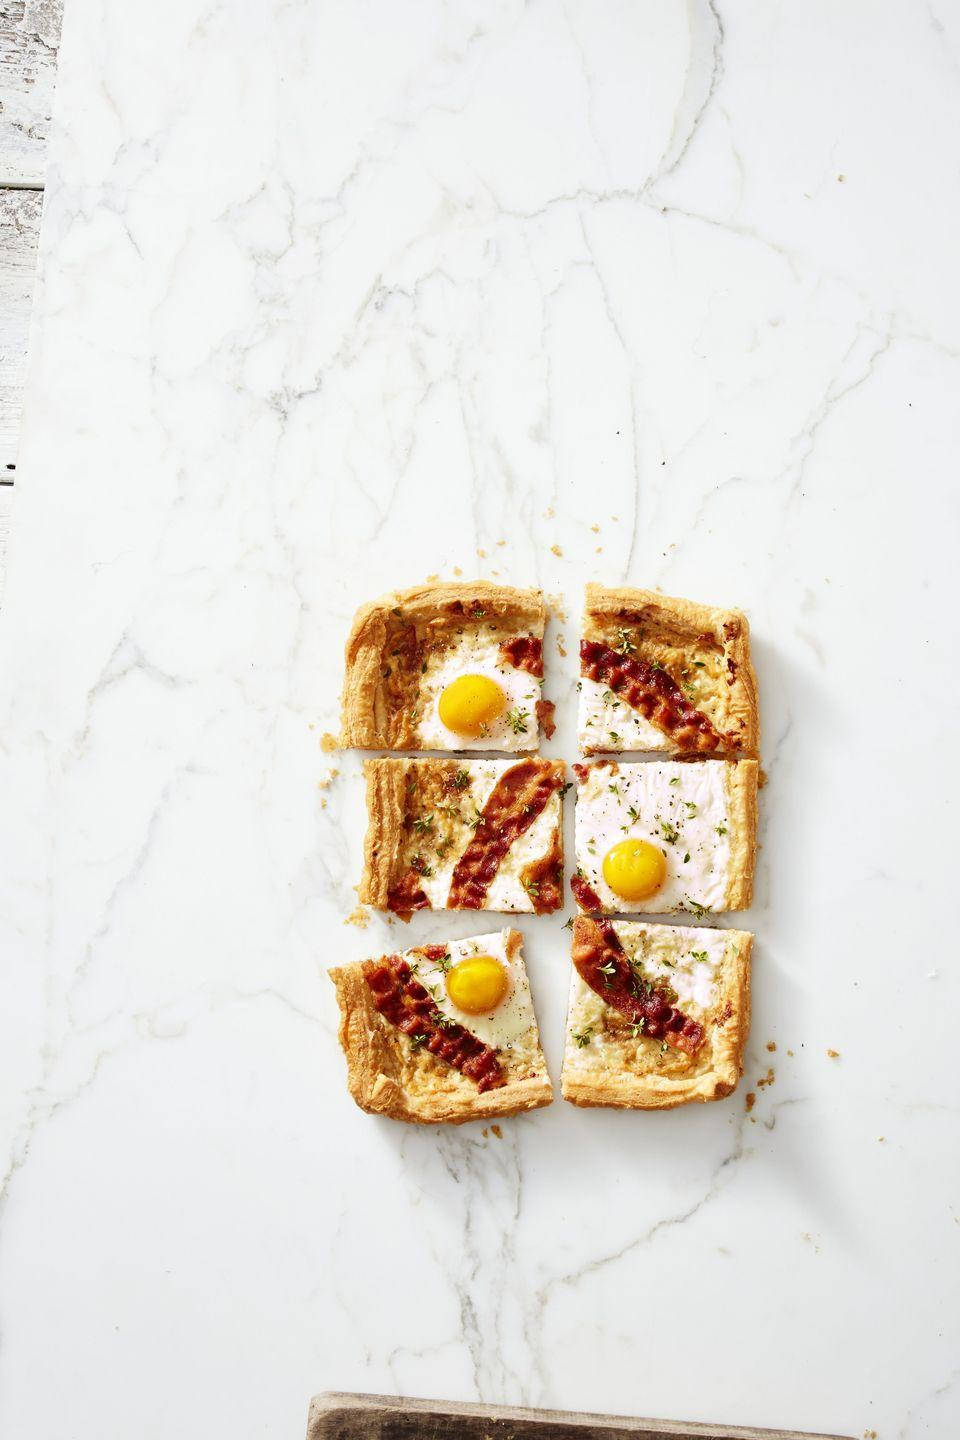 """<p>Use eggs and bacon as decoration for this """"pizza pie.""""</p><p><a class=""""link rapid-noclick-resp"""" href=""""https://www.amazon.com/gp/product/B019S3W8AO/ref=s9_acsd_topr_hd_bw_b1DO9_c_x_1_w?tag=syn-yahoo-20&ascsubtag=%5Bartid%7C10055.g.1914%5Bsrc%7Cyahoo-us"""" rel=""""nofollow noopener"""" target=""""_blank"""" data-ylk=""""slk:SHOP PIZZA CUTTERS"""">SHOP PIZZA CUTTERS</a></p><p><em><a href=""""https://www.goodhousekeeping.com/food-recipes/easy/a42425/bacon-gruyere-breakfast-pie-recipe/"""" rel=""""nofollow noopener"""" target=""""_blank"""" data-ylk=""""slk:Get the recipe for Bacon Gruyére Breakfast &quot;Pie&quot; »"""" class=""""link rapid-noclick-resp"""">Get the recipe for Bacon Gruyére Breakfast """"Pie"""" »</a></em></p>"""